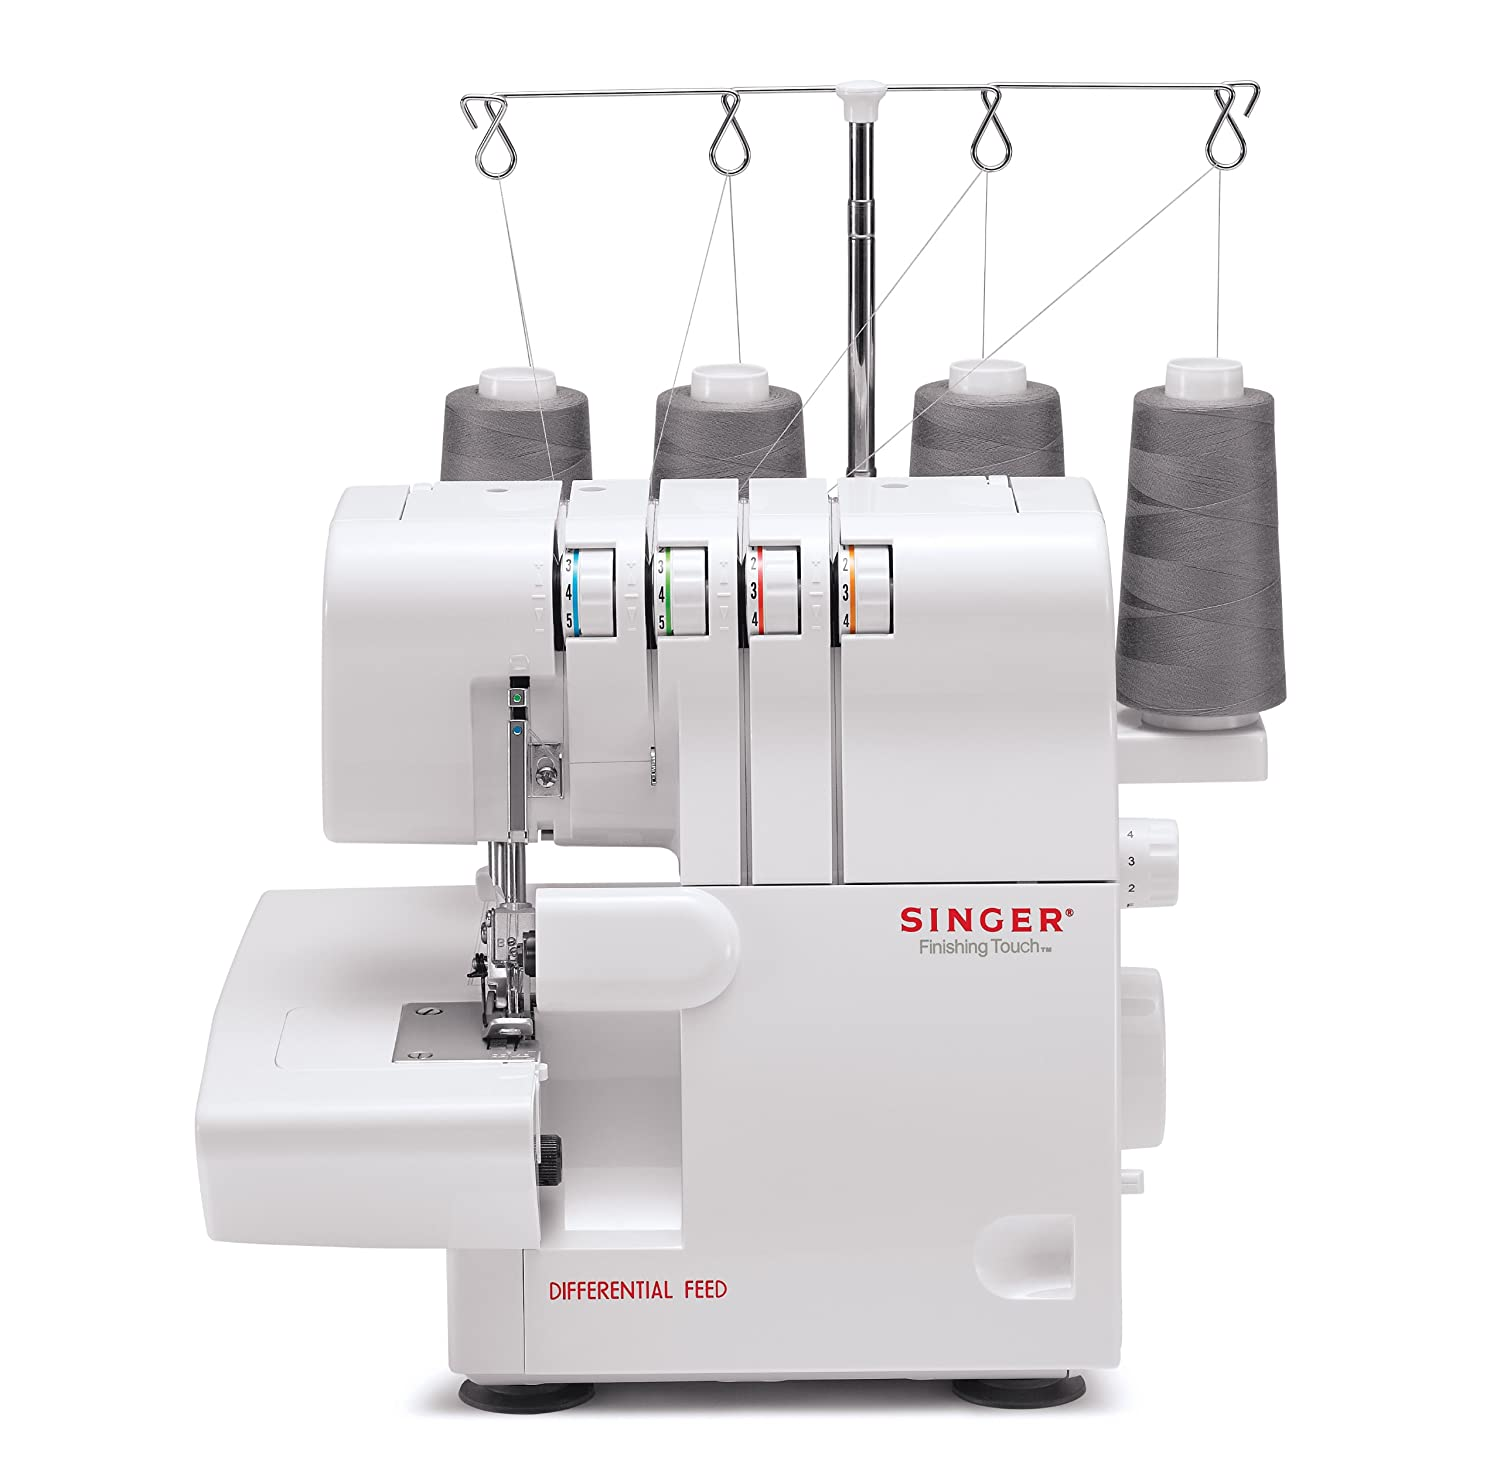 Top 5 Best Serger For Knits (2019 Reviews) 4